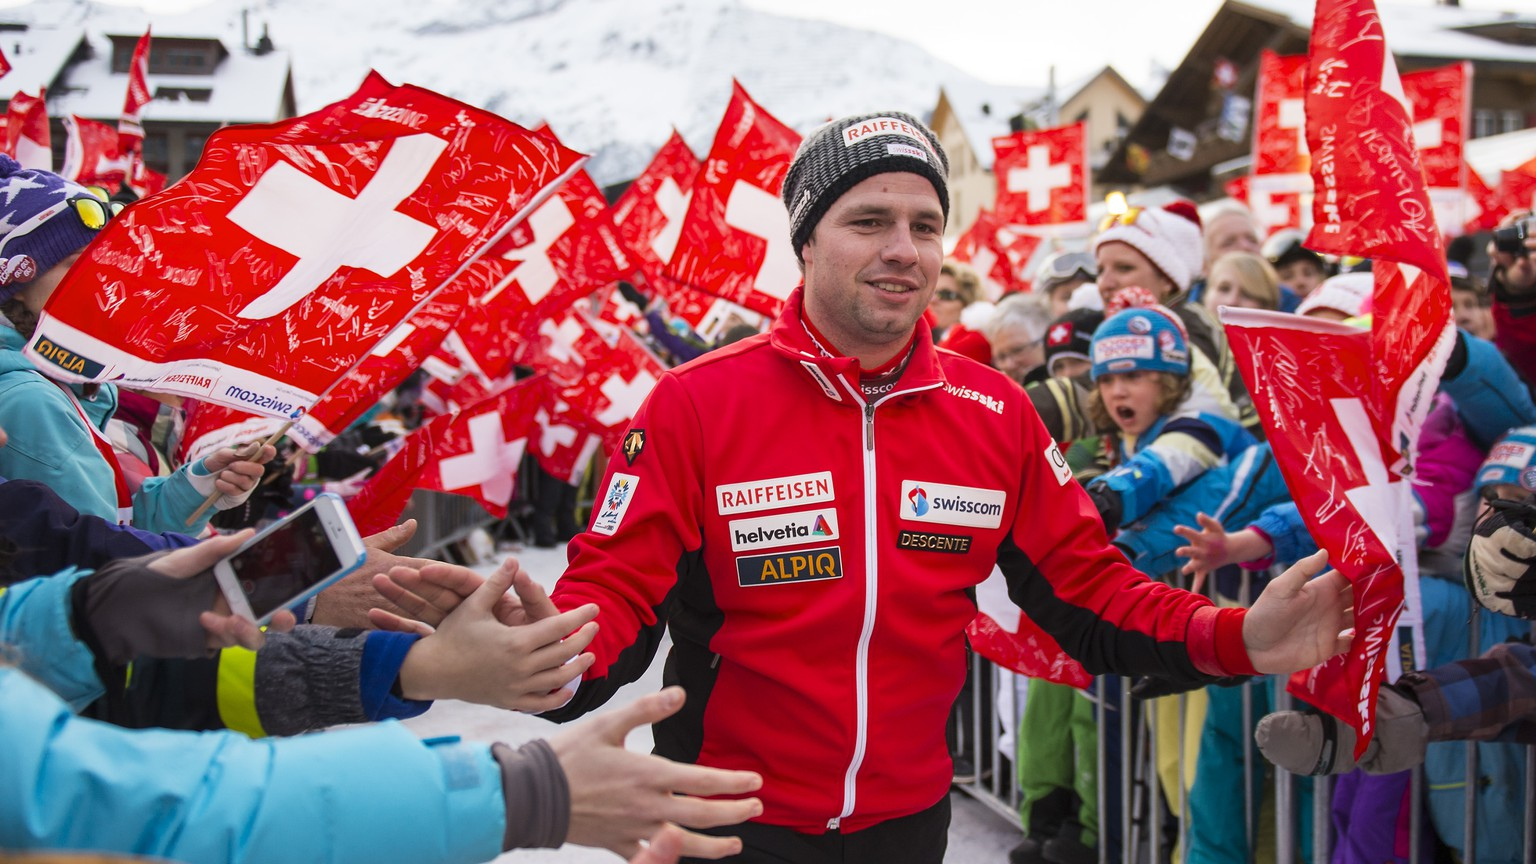 Beat Feuz of Switzerland, 2nd place, celebrates with fans during the prize giving ceremony after the men's downhill race of the FIS Alpine Ski World Cup season at the Lauberhorn, in Wengen, Switzerland, Sunday, January 18, 2015. (KEYSTONE/Jean-Christophe Bott)